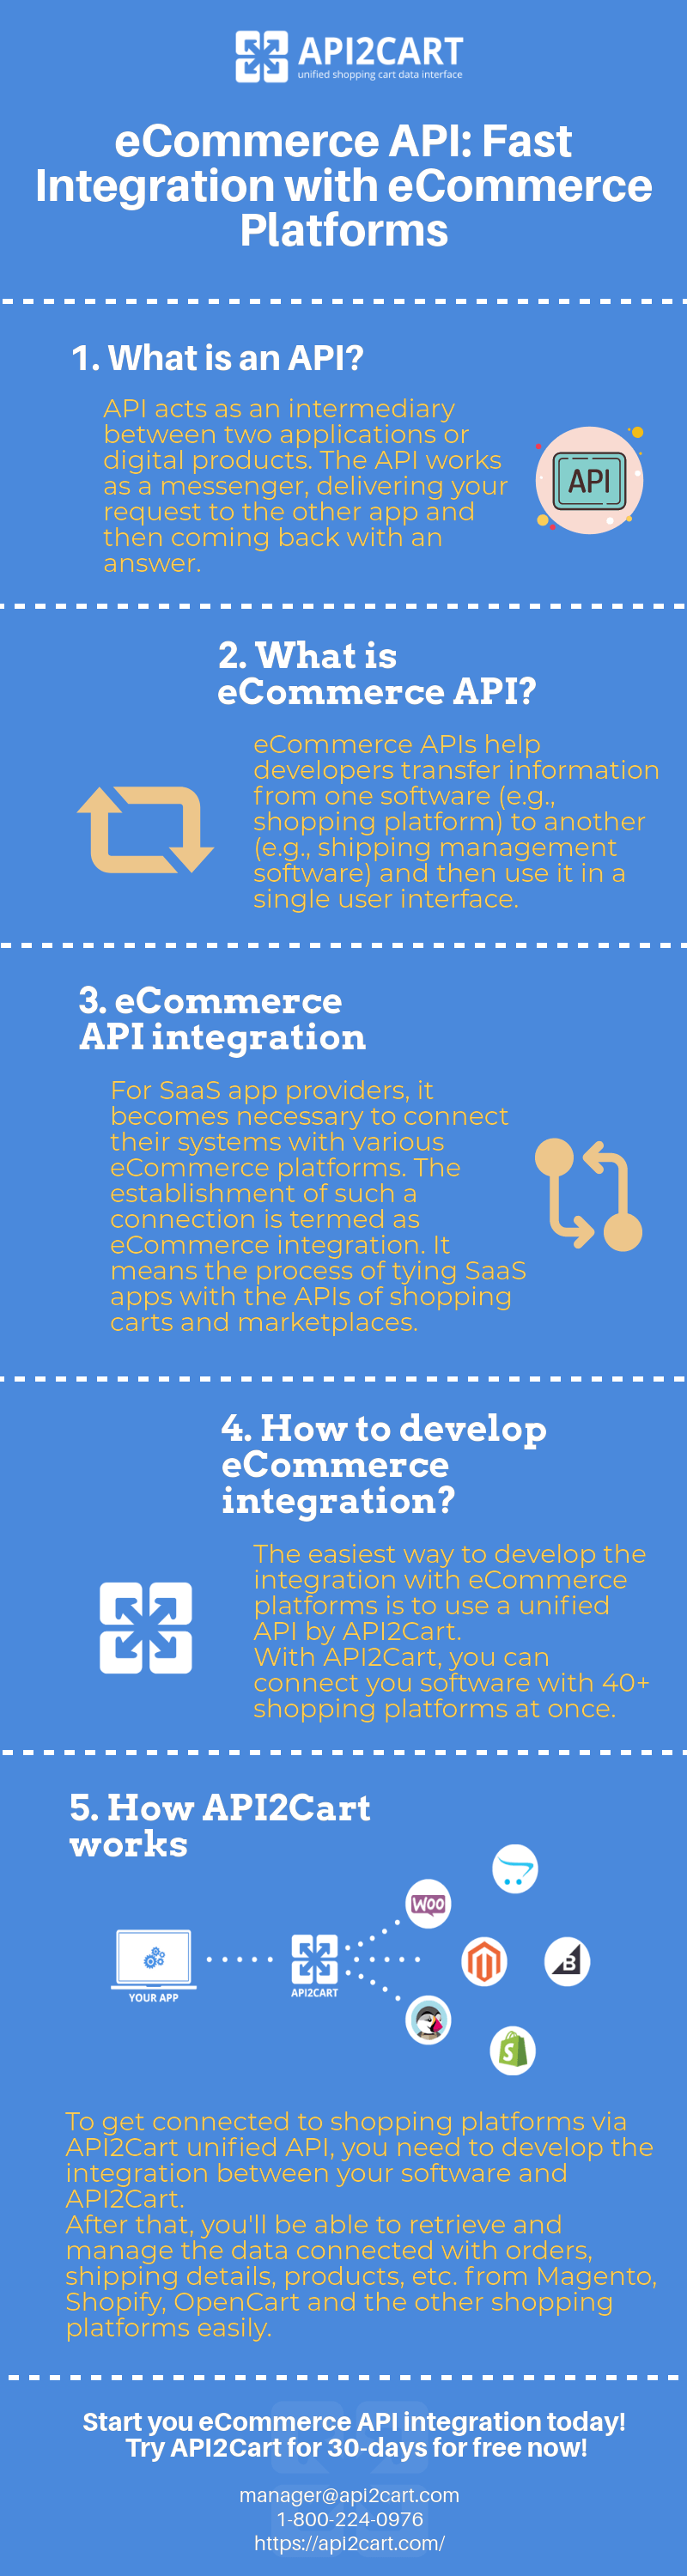 eCommerce API: Fast Integration with eCommerce Platforms [Infographic]